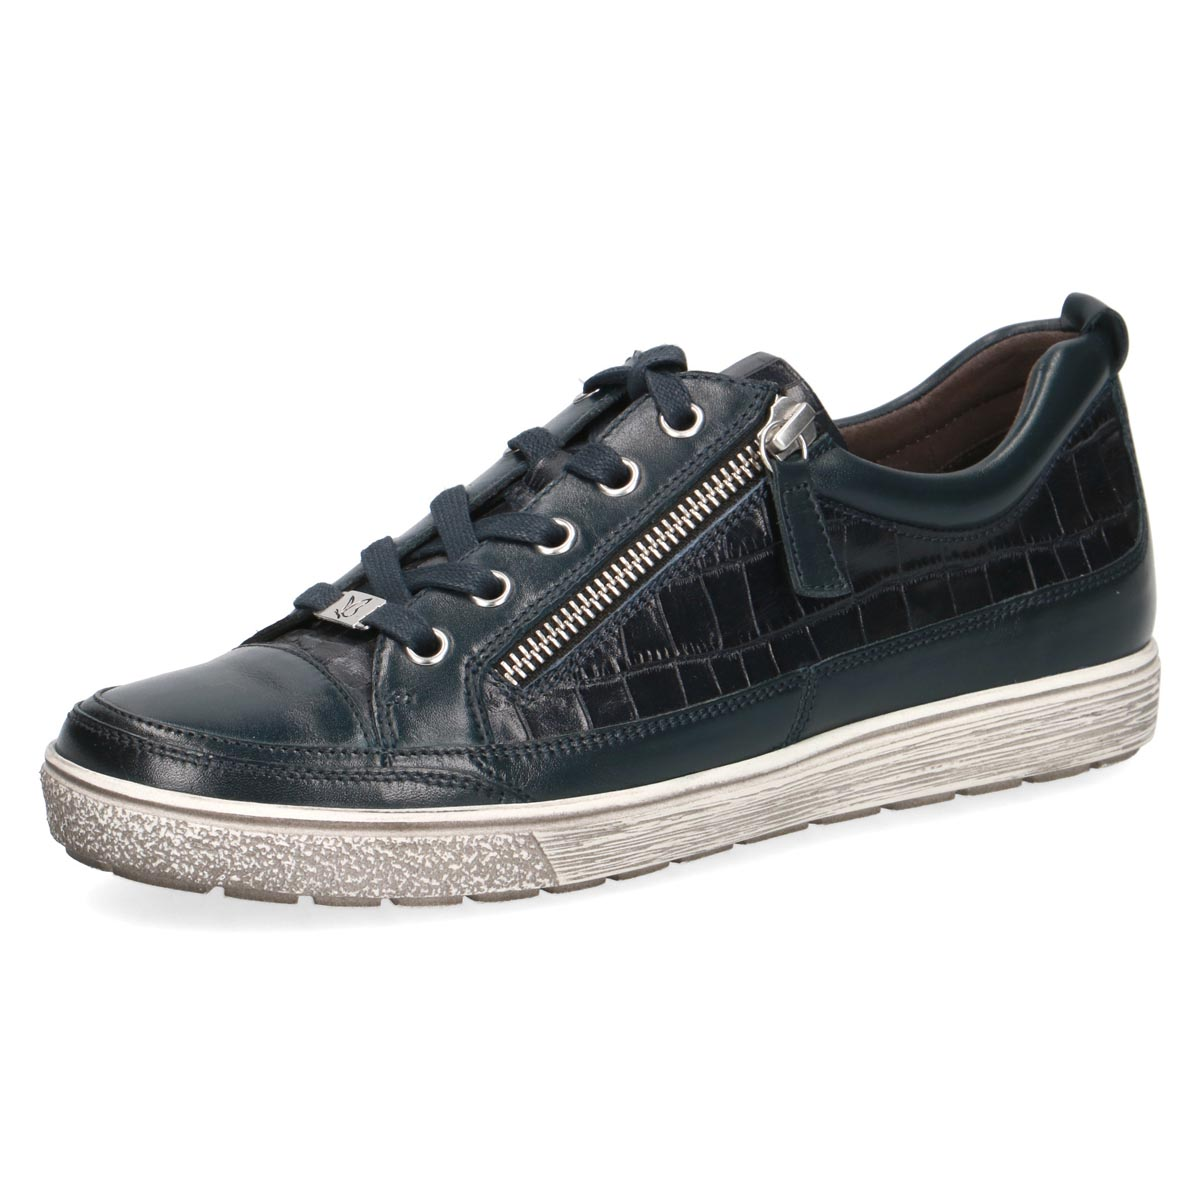 Caprice - Suky Navy Leather Sneaker